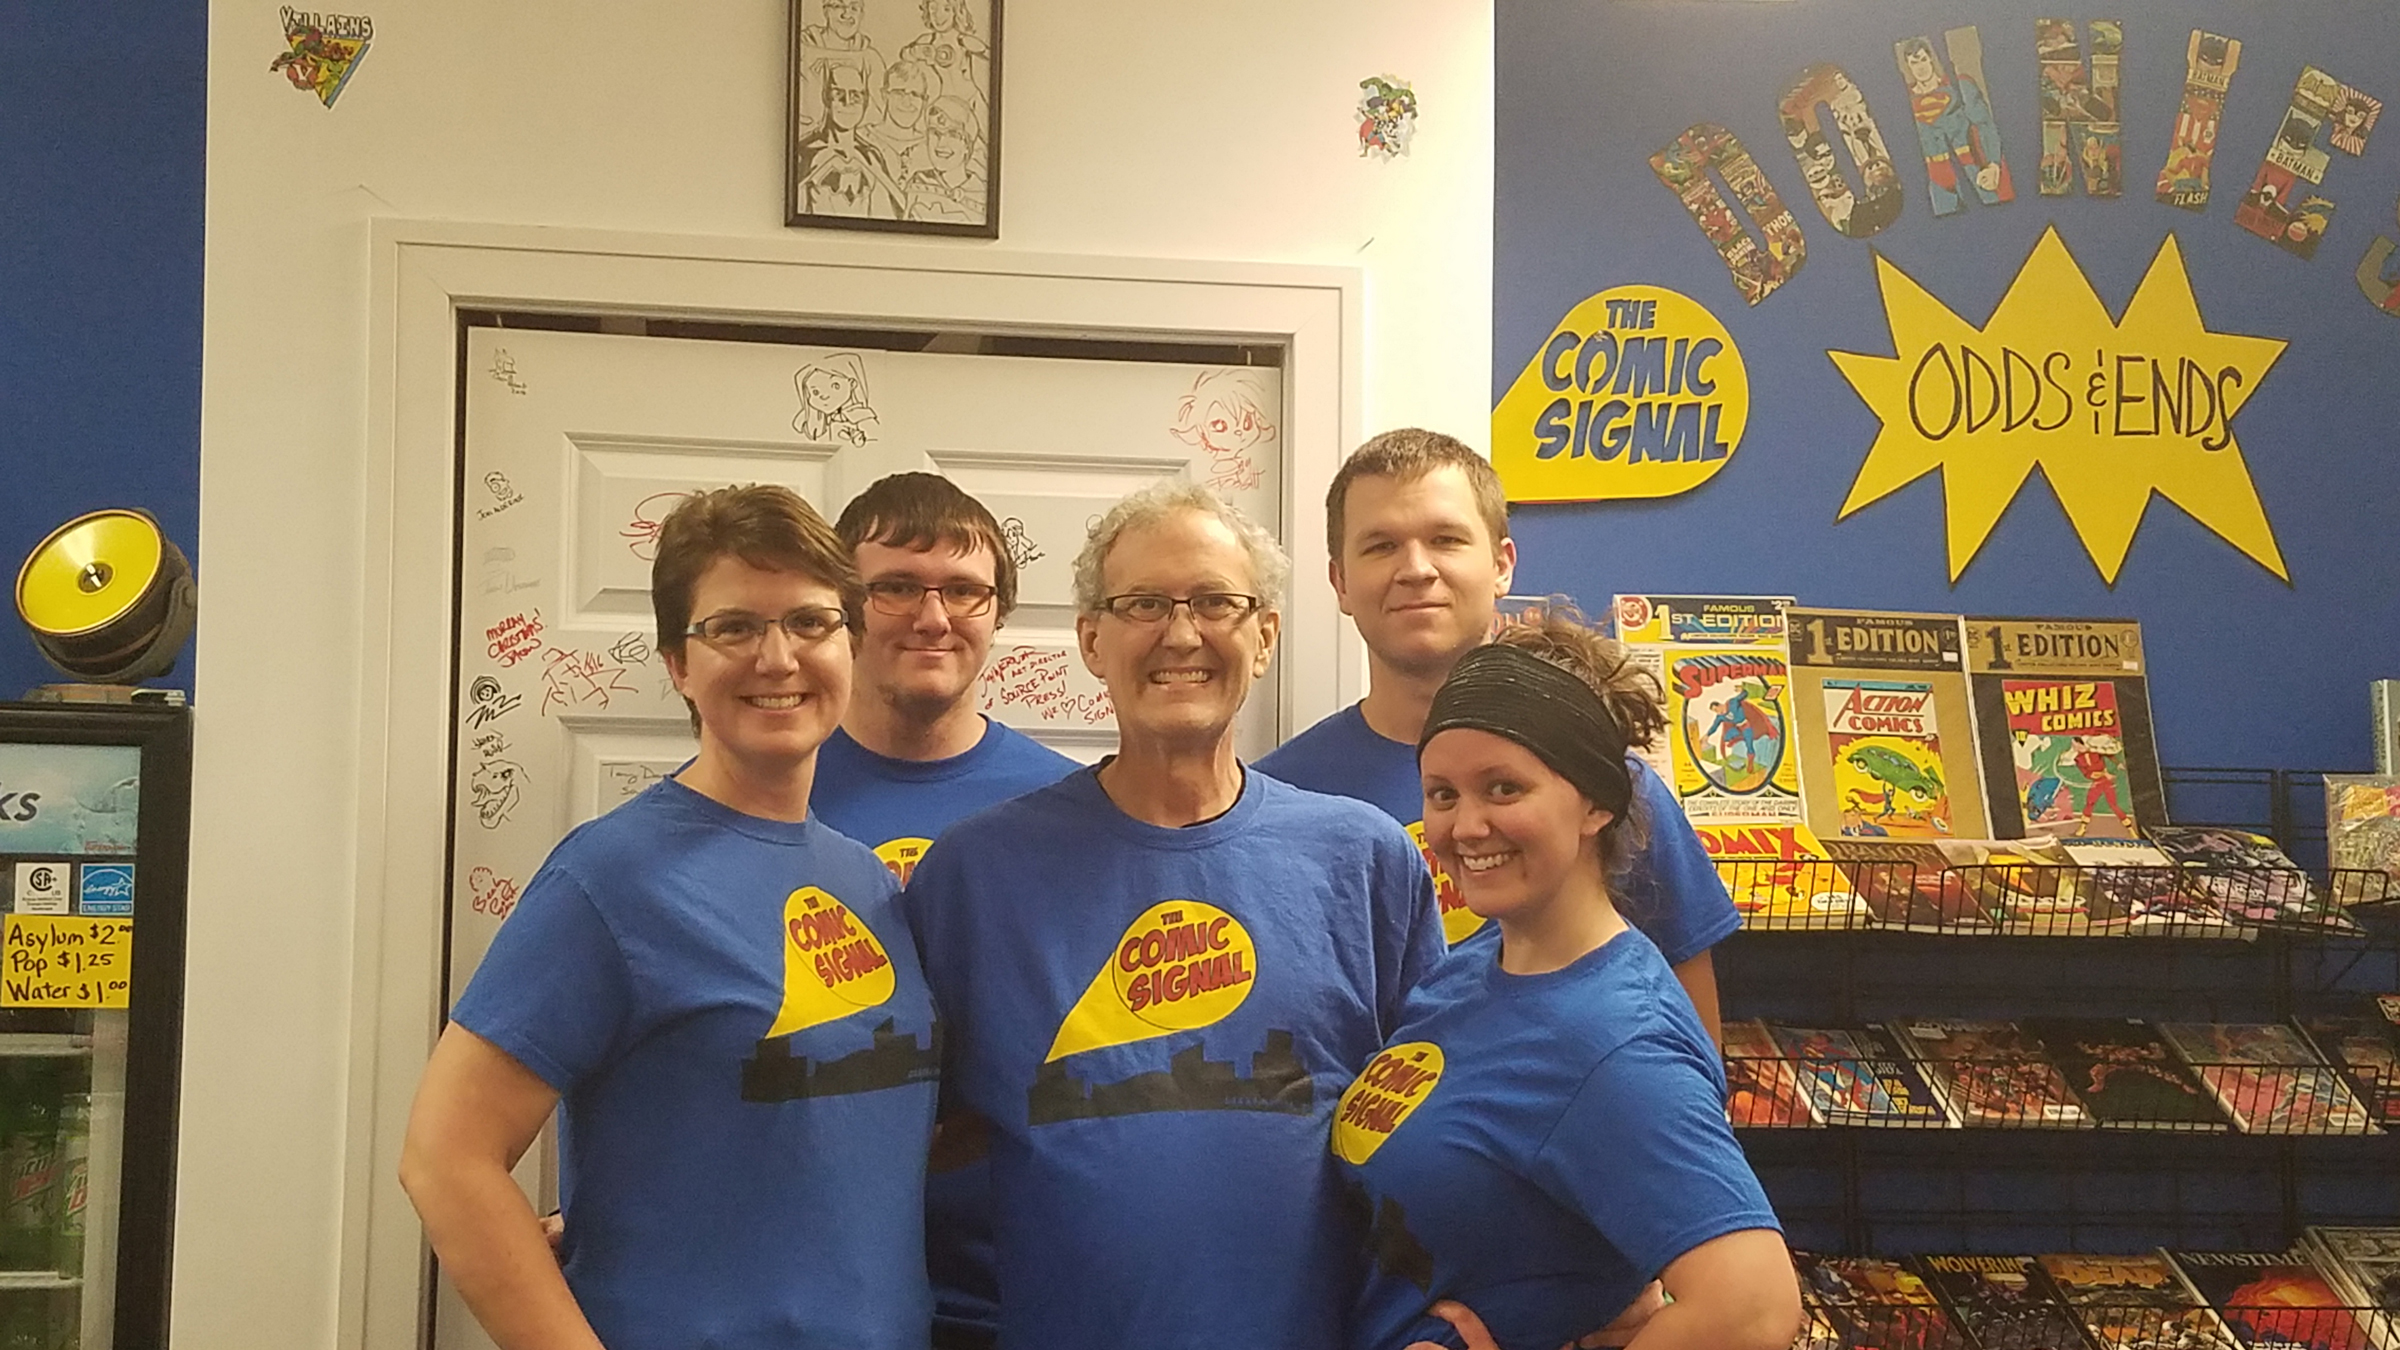 Myers Family opened The Comic Signal two years ago.